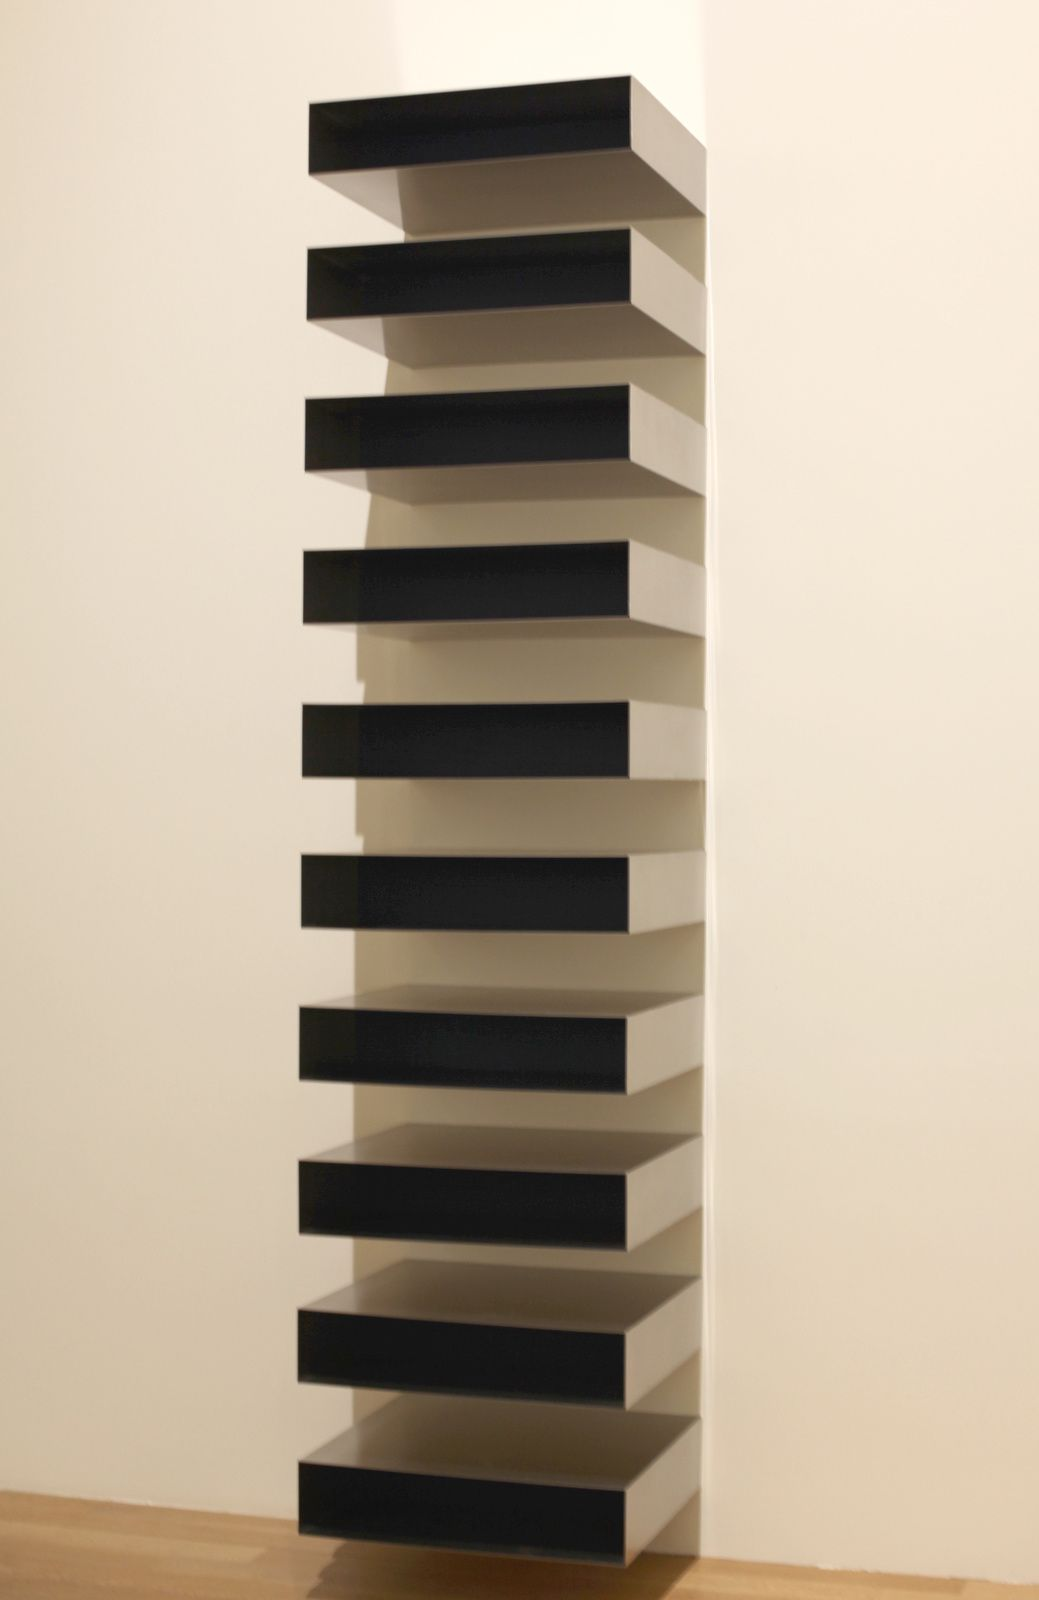 """Untitled"", 1973 de Donald Judd. Collection at the San Francisco Museum of Modern Art © Photo Éric Simon"